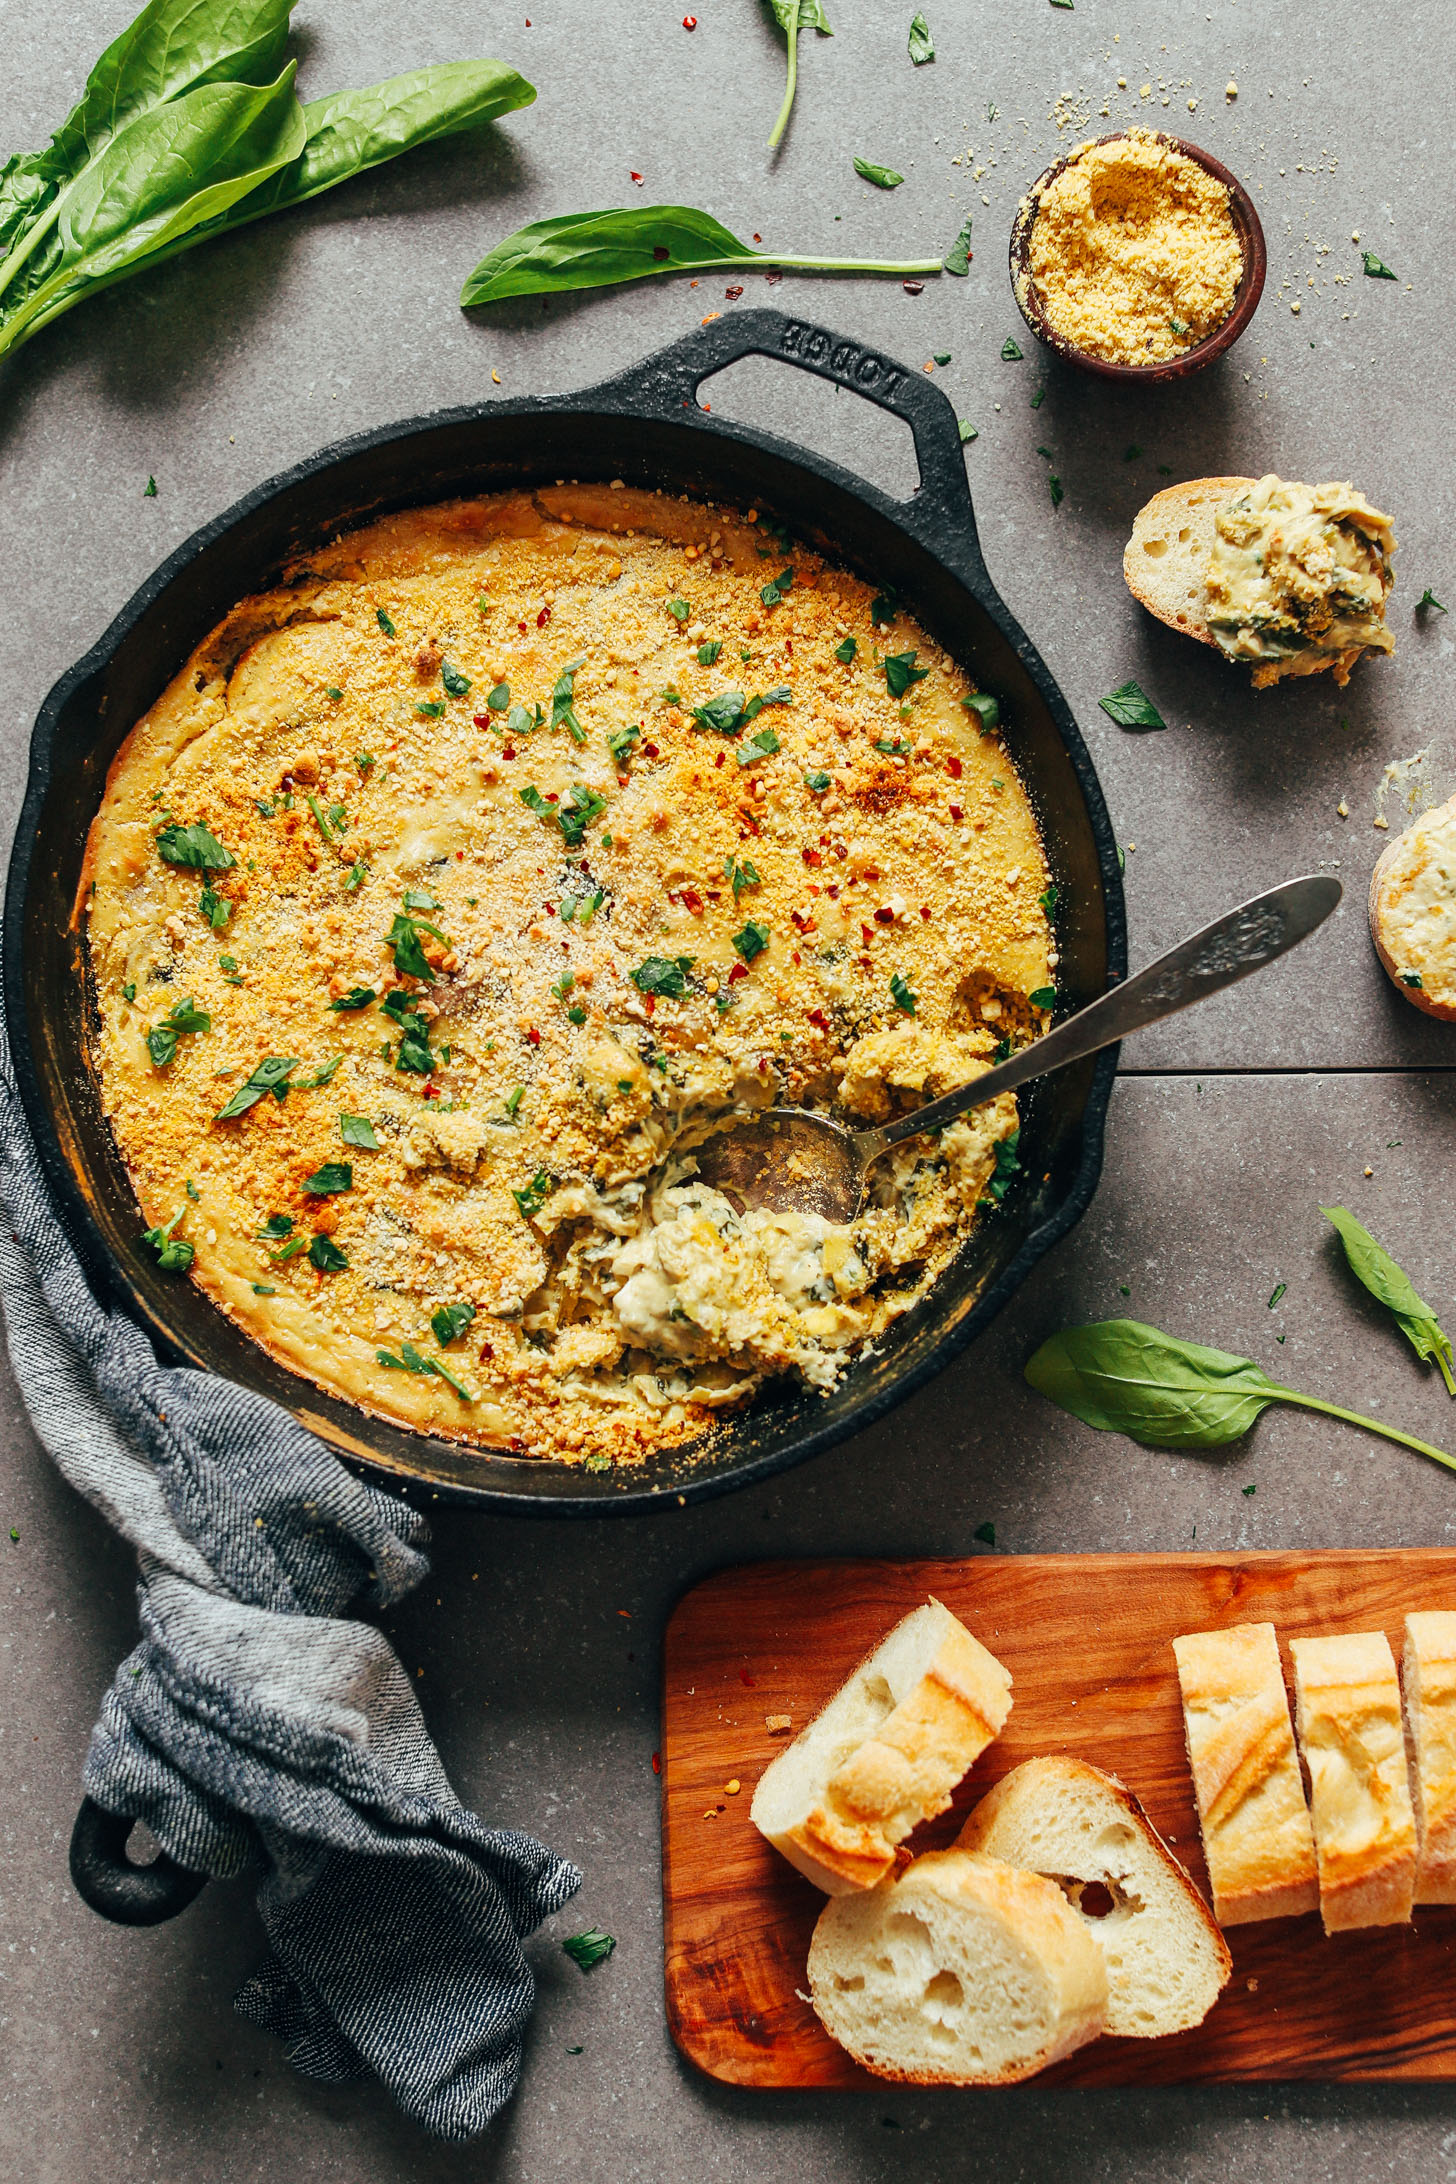 Spoon submerged in a skillet of homemade vegan GF Spinach Artichoke Dip